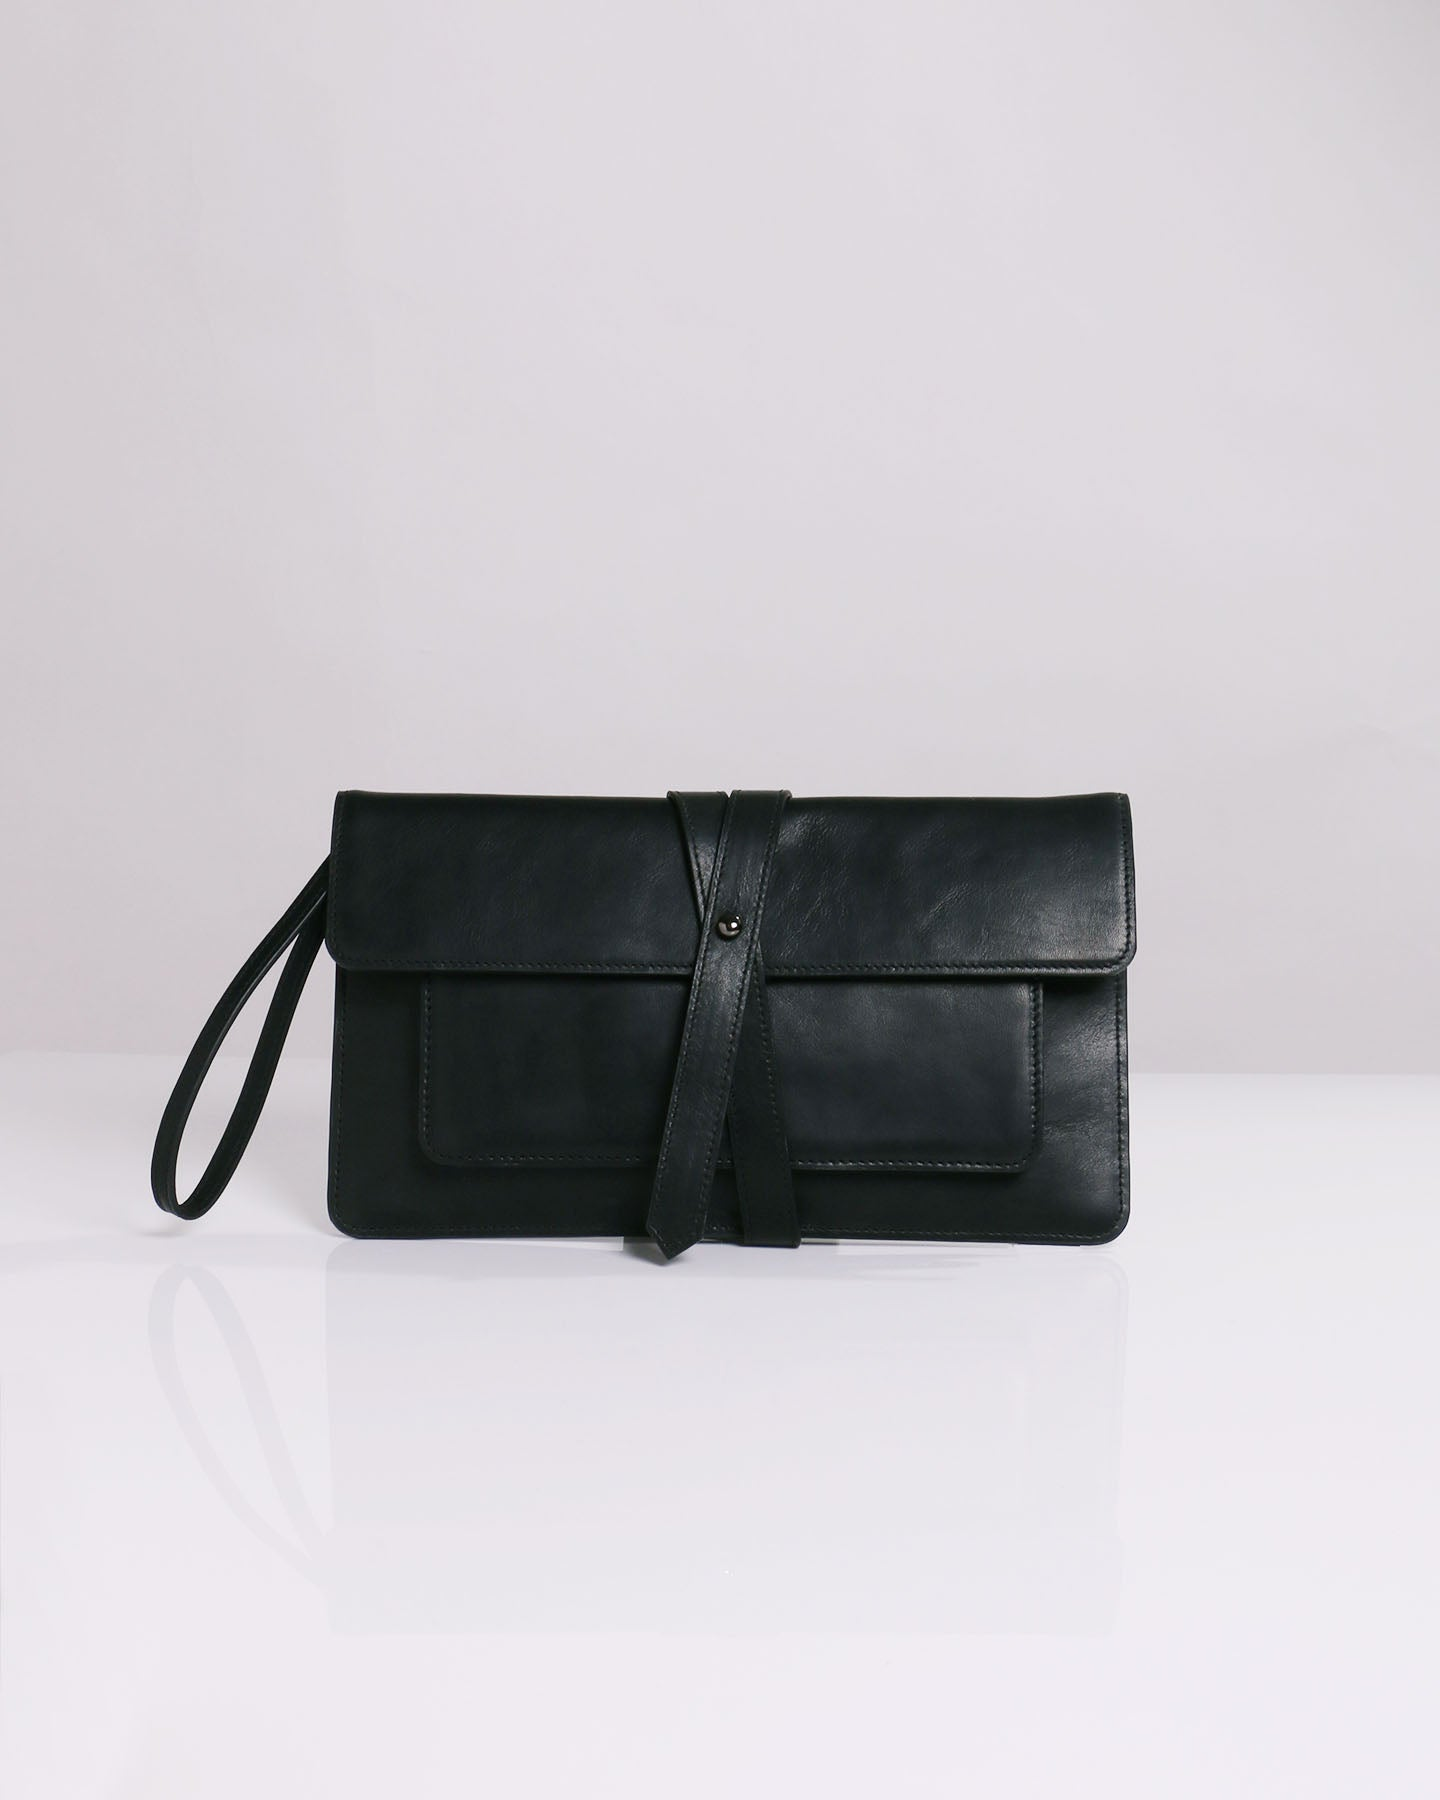 GLEN - Handbag | Unyé Design